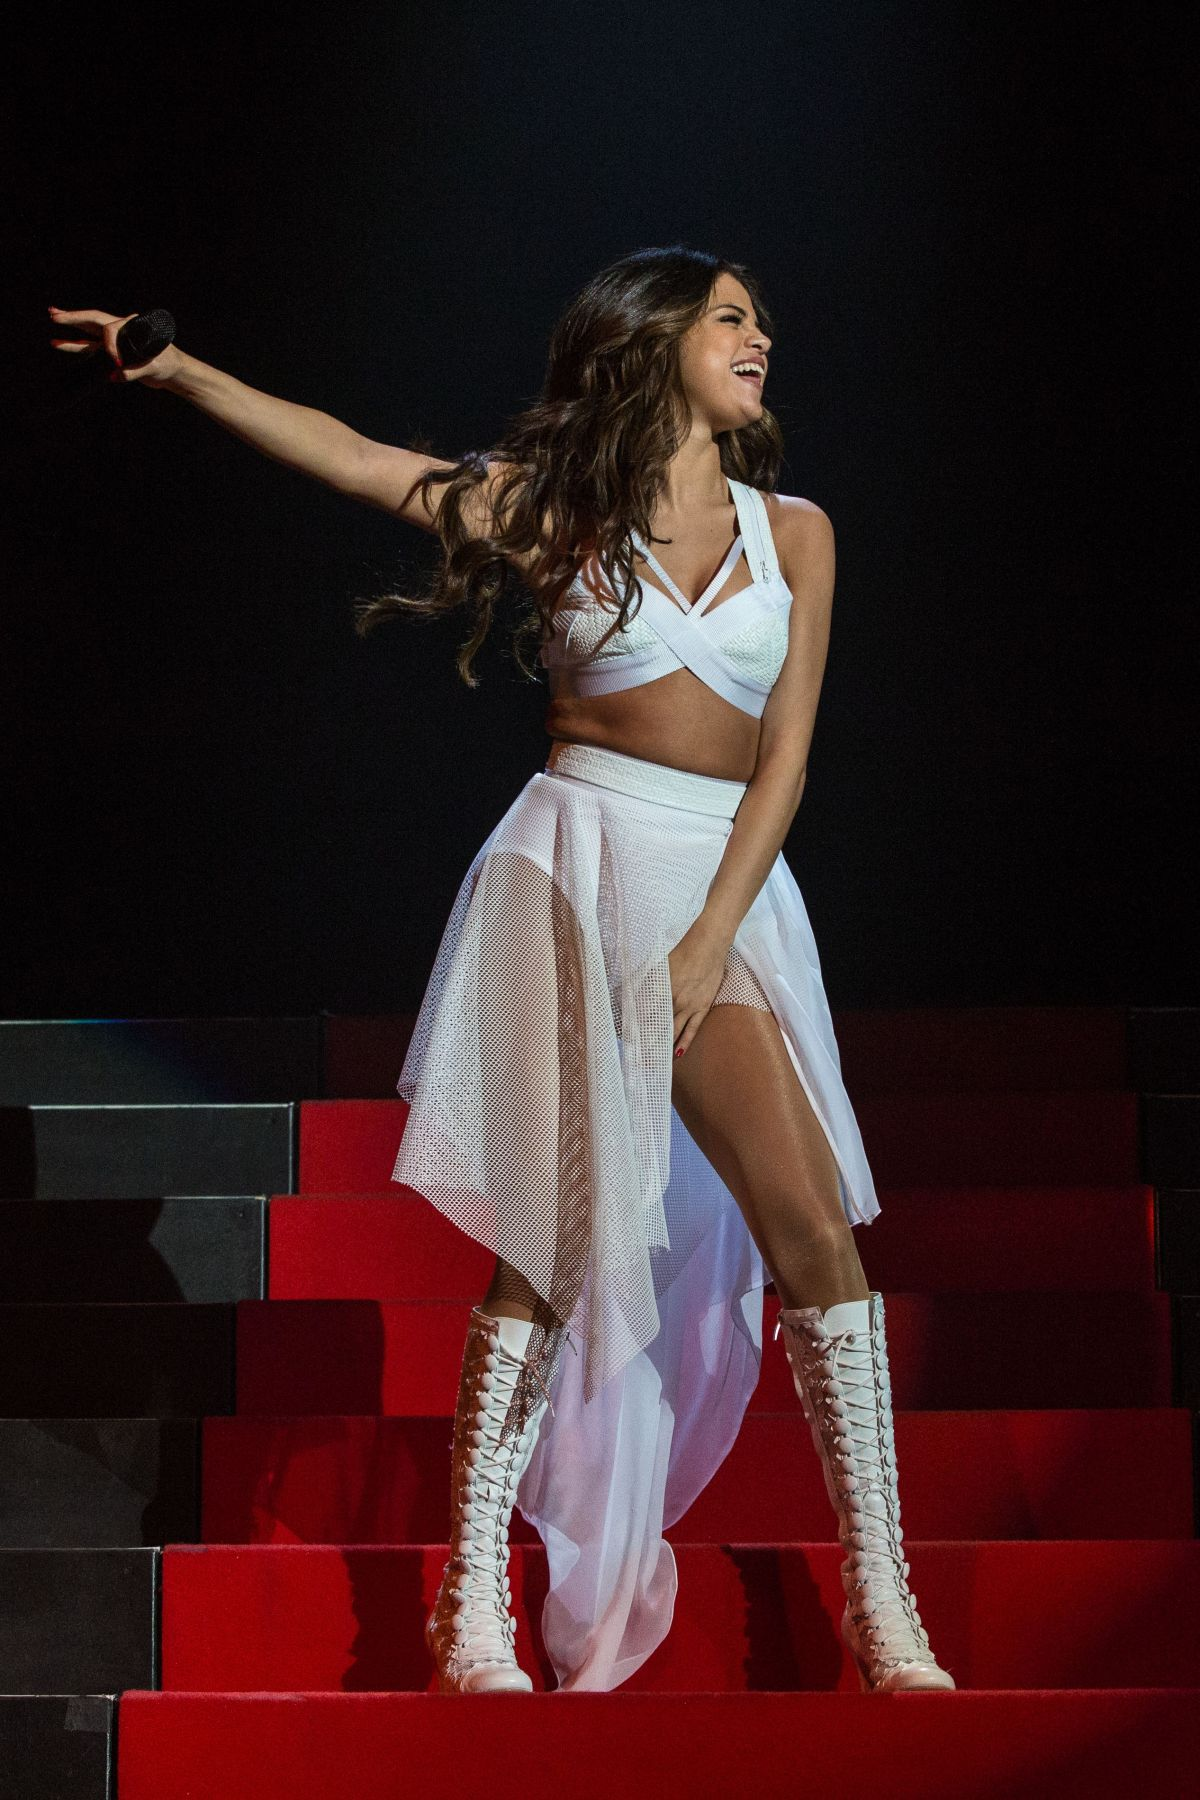 Sexy selena gomez dancing and shake her perfect ass 1